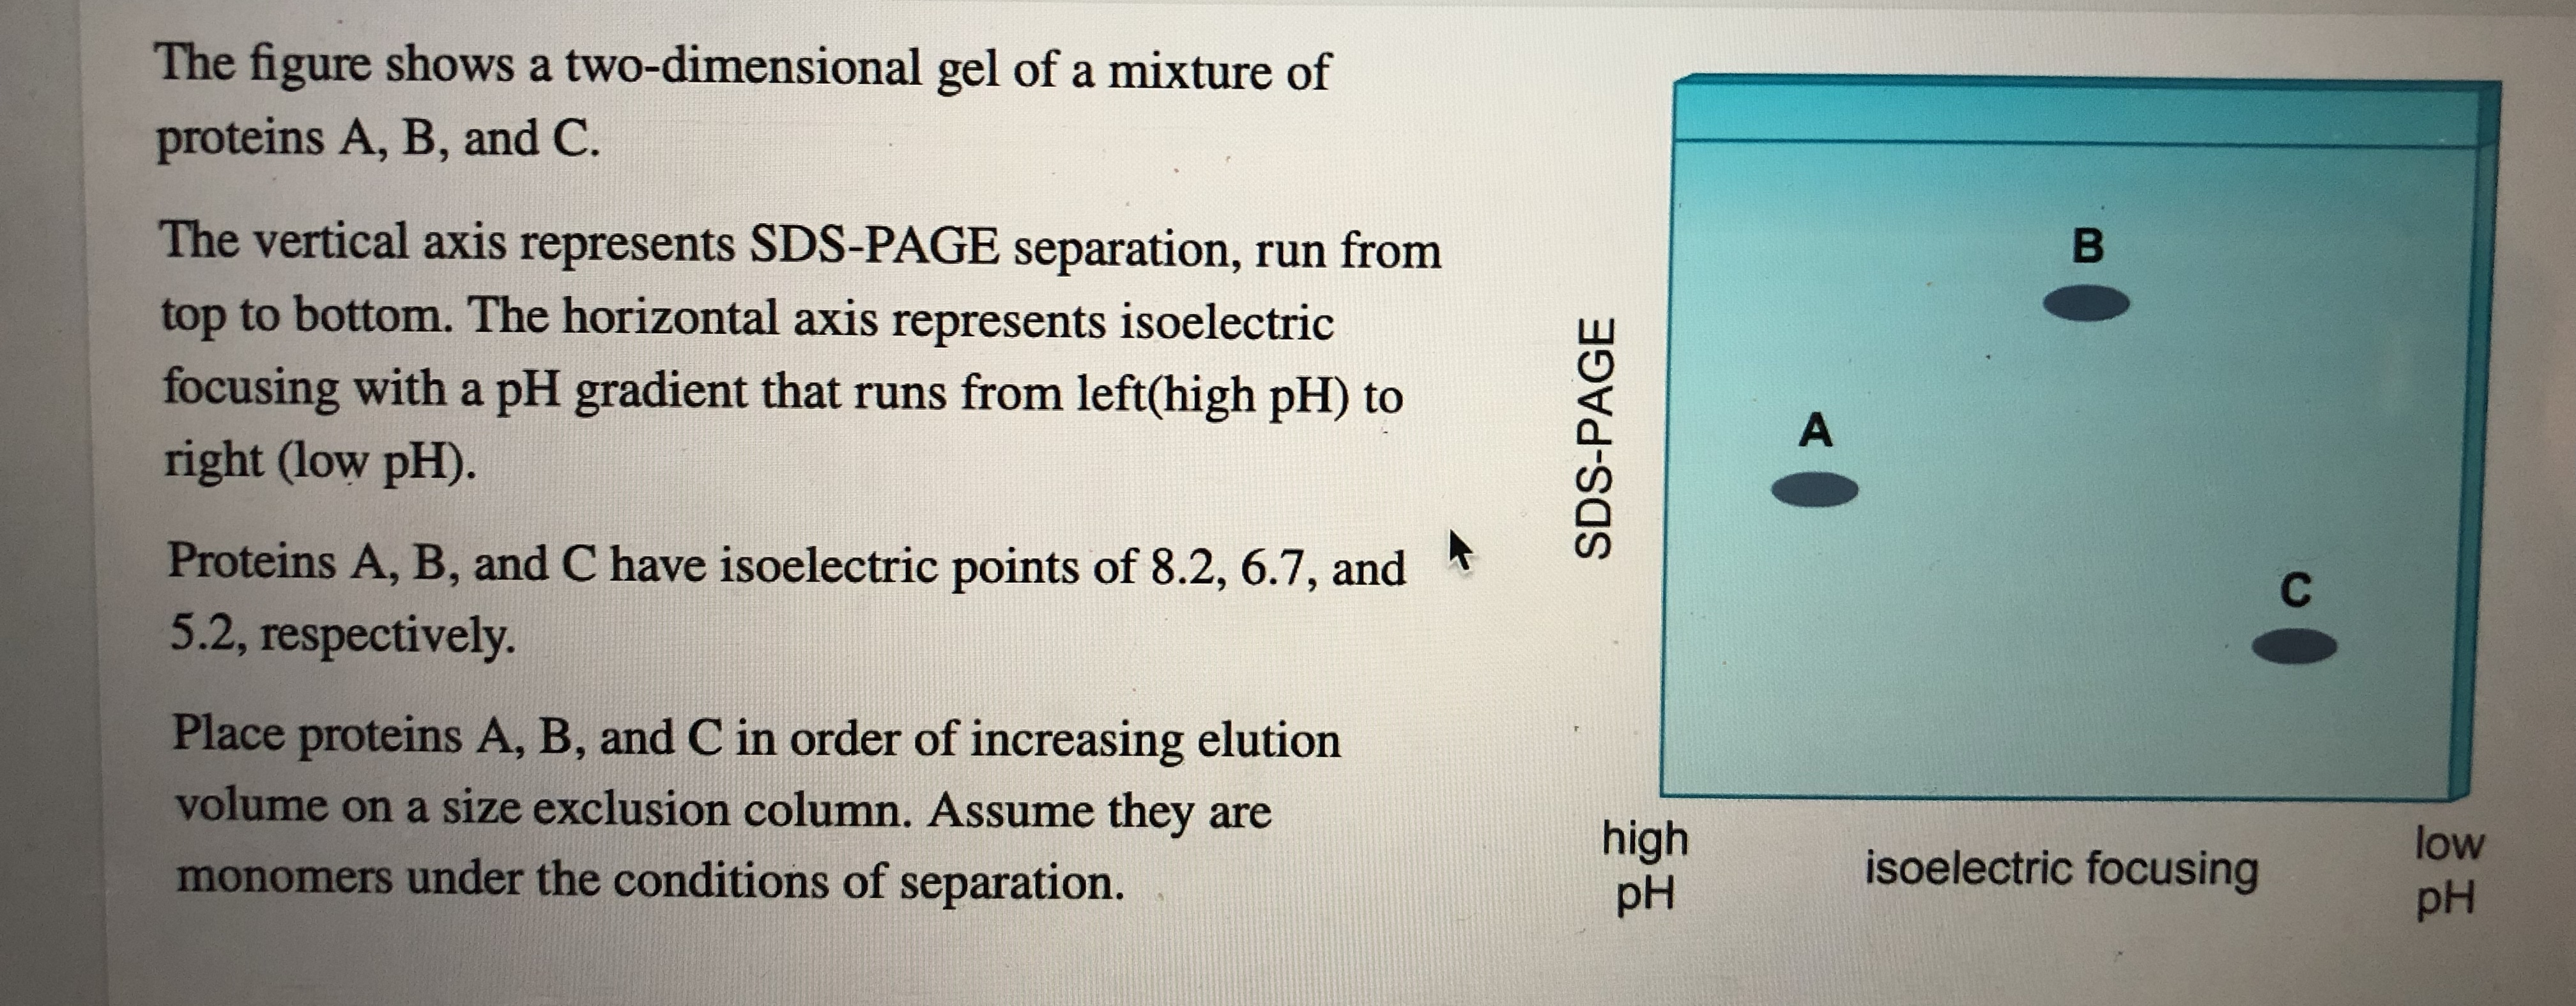 The figure shows a two-dimensional gel of a mixture of proteins A, B, and C. The vertical axis represents SDS-PAGE separation, run from top to bottom. The horizontal axis represents isoelectric focusing with a pH gradient that runs from left(high pH) to right (low pH). В A Proteins A, B, and C have isoelectric points of 8.2, 6.7, and 5.2, respectively. С Place proteins A, B, and C in order of increasing elution volume on a size exclusion column. Assume they are high pH low isoelectric focusing monomers under the conditions of separation. pH SDS-PAGE